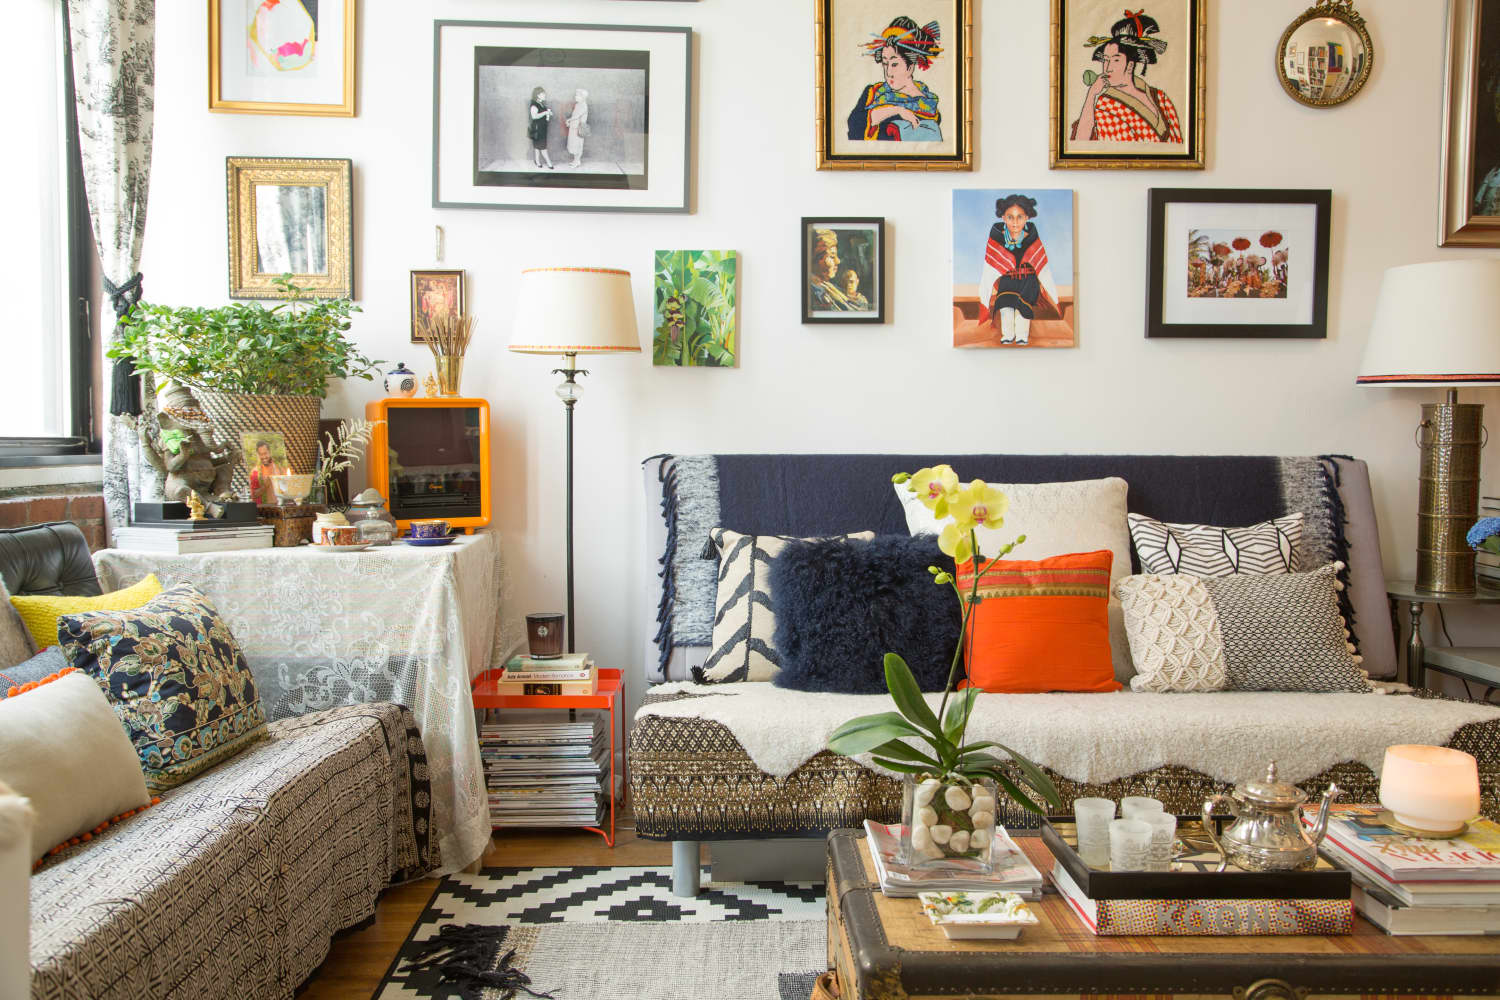 3 Things You Should Always Buy Secondhand—and One to Skip